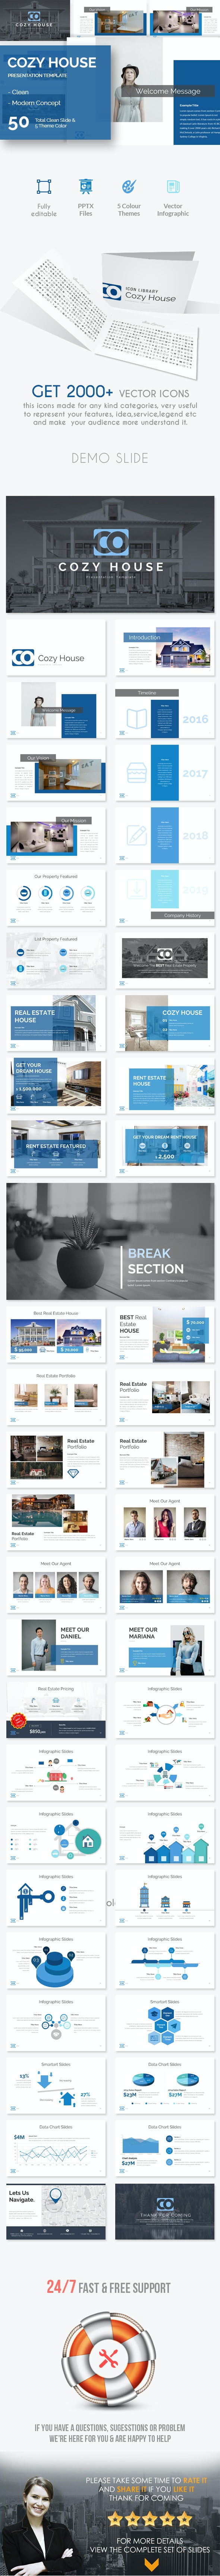 Cozy House Presentation Template - Business PowerPoint Templates